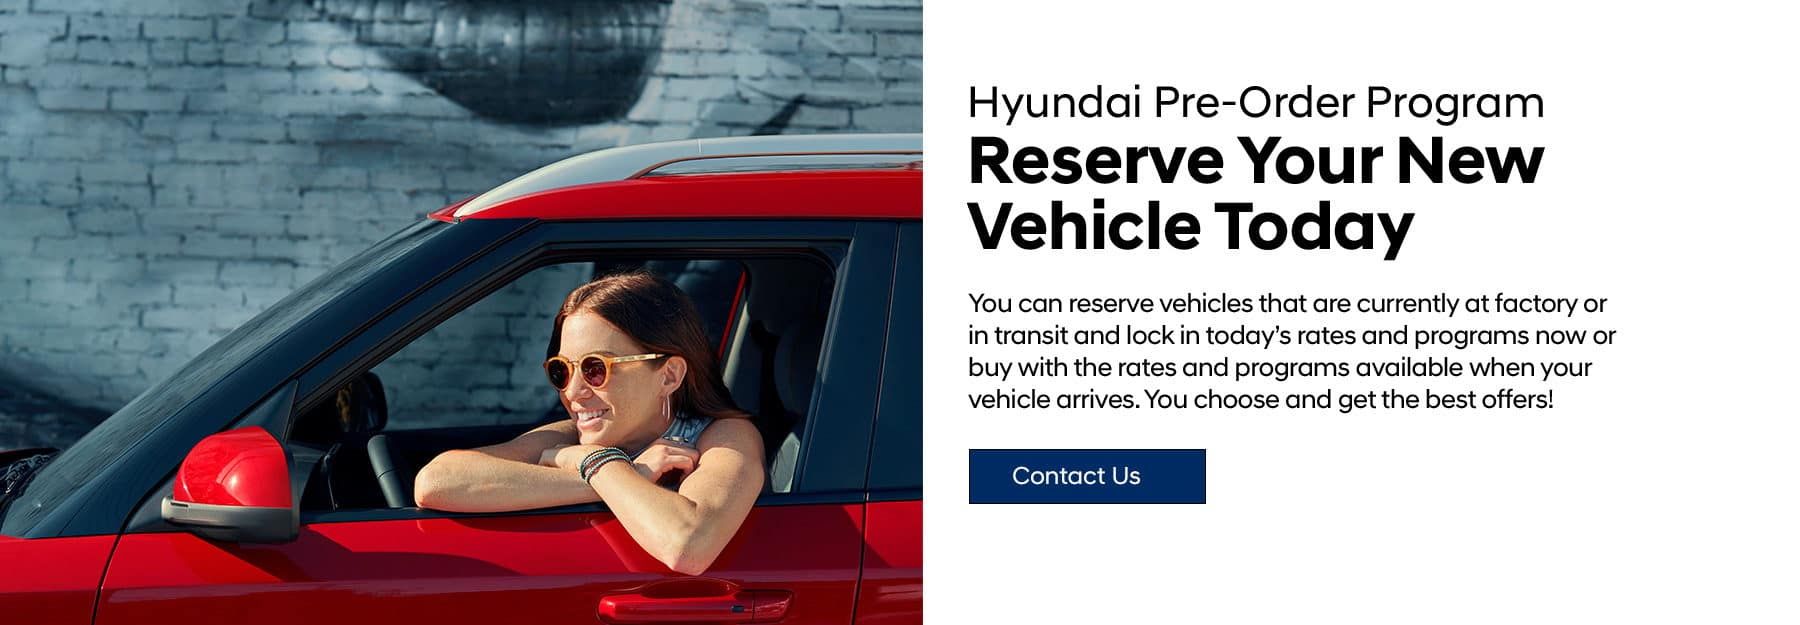 Hyundai Pre-Order Program. Reserve Your New Vehicle Today. You can reserve vehicles that are currently at factory or in transit and lock in today's rates and programs now or buy with the rates and programs available when your vehicle arrives.You choose and get the best offers!